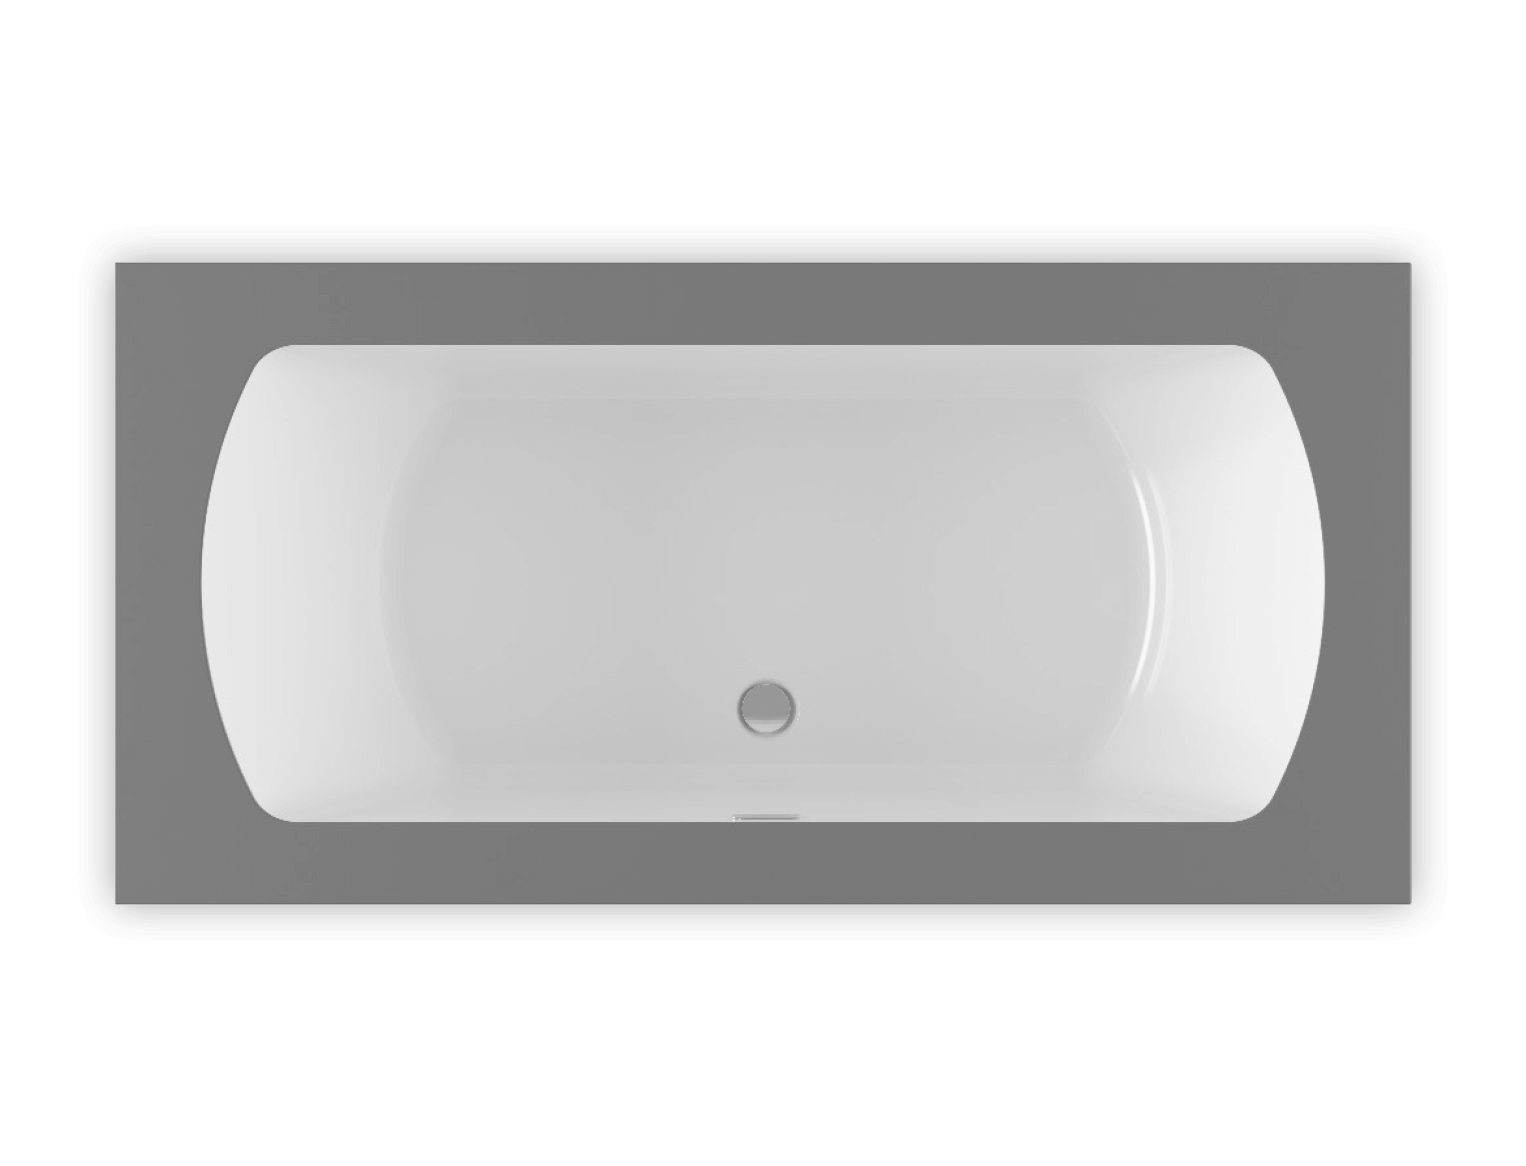 Monarch 7240 air jet bathtub for your modern bathroom